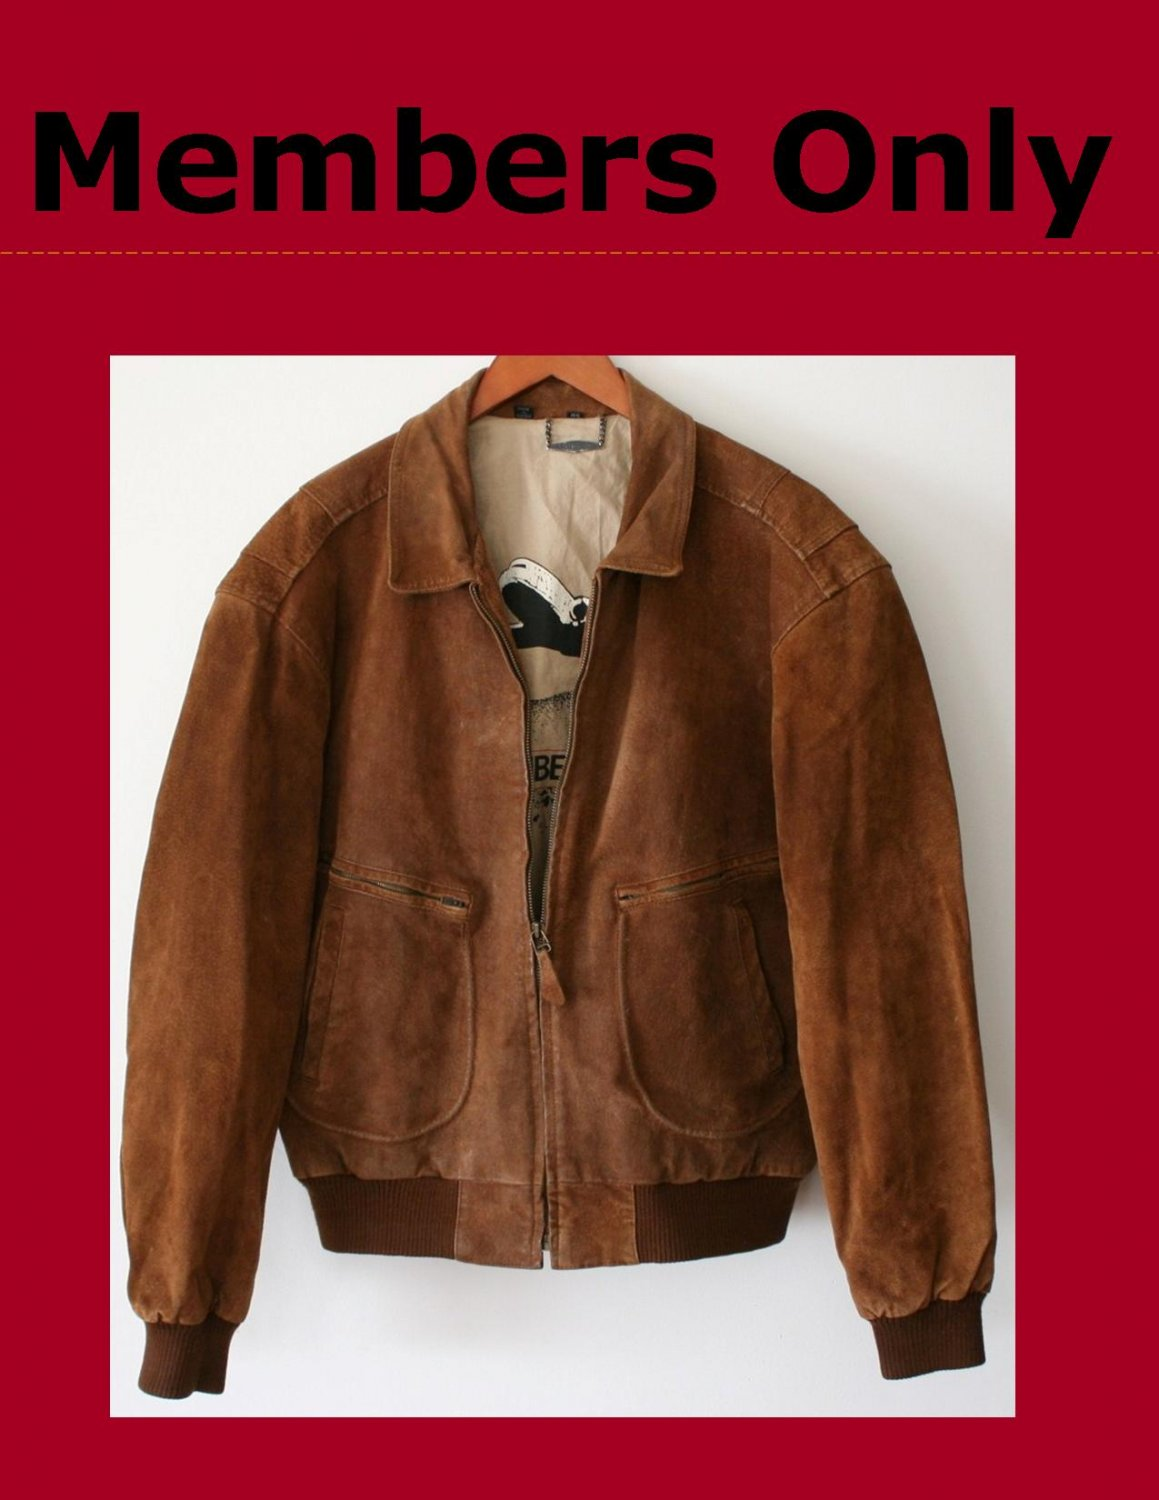 Vintage 80's Mens Members Only Suede Leather Jacket Size 44